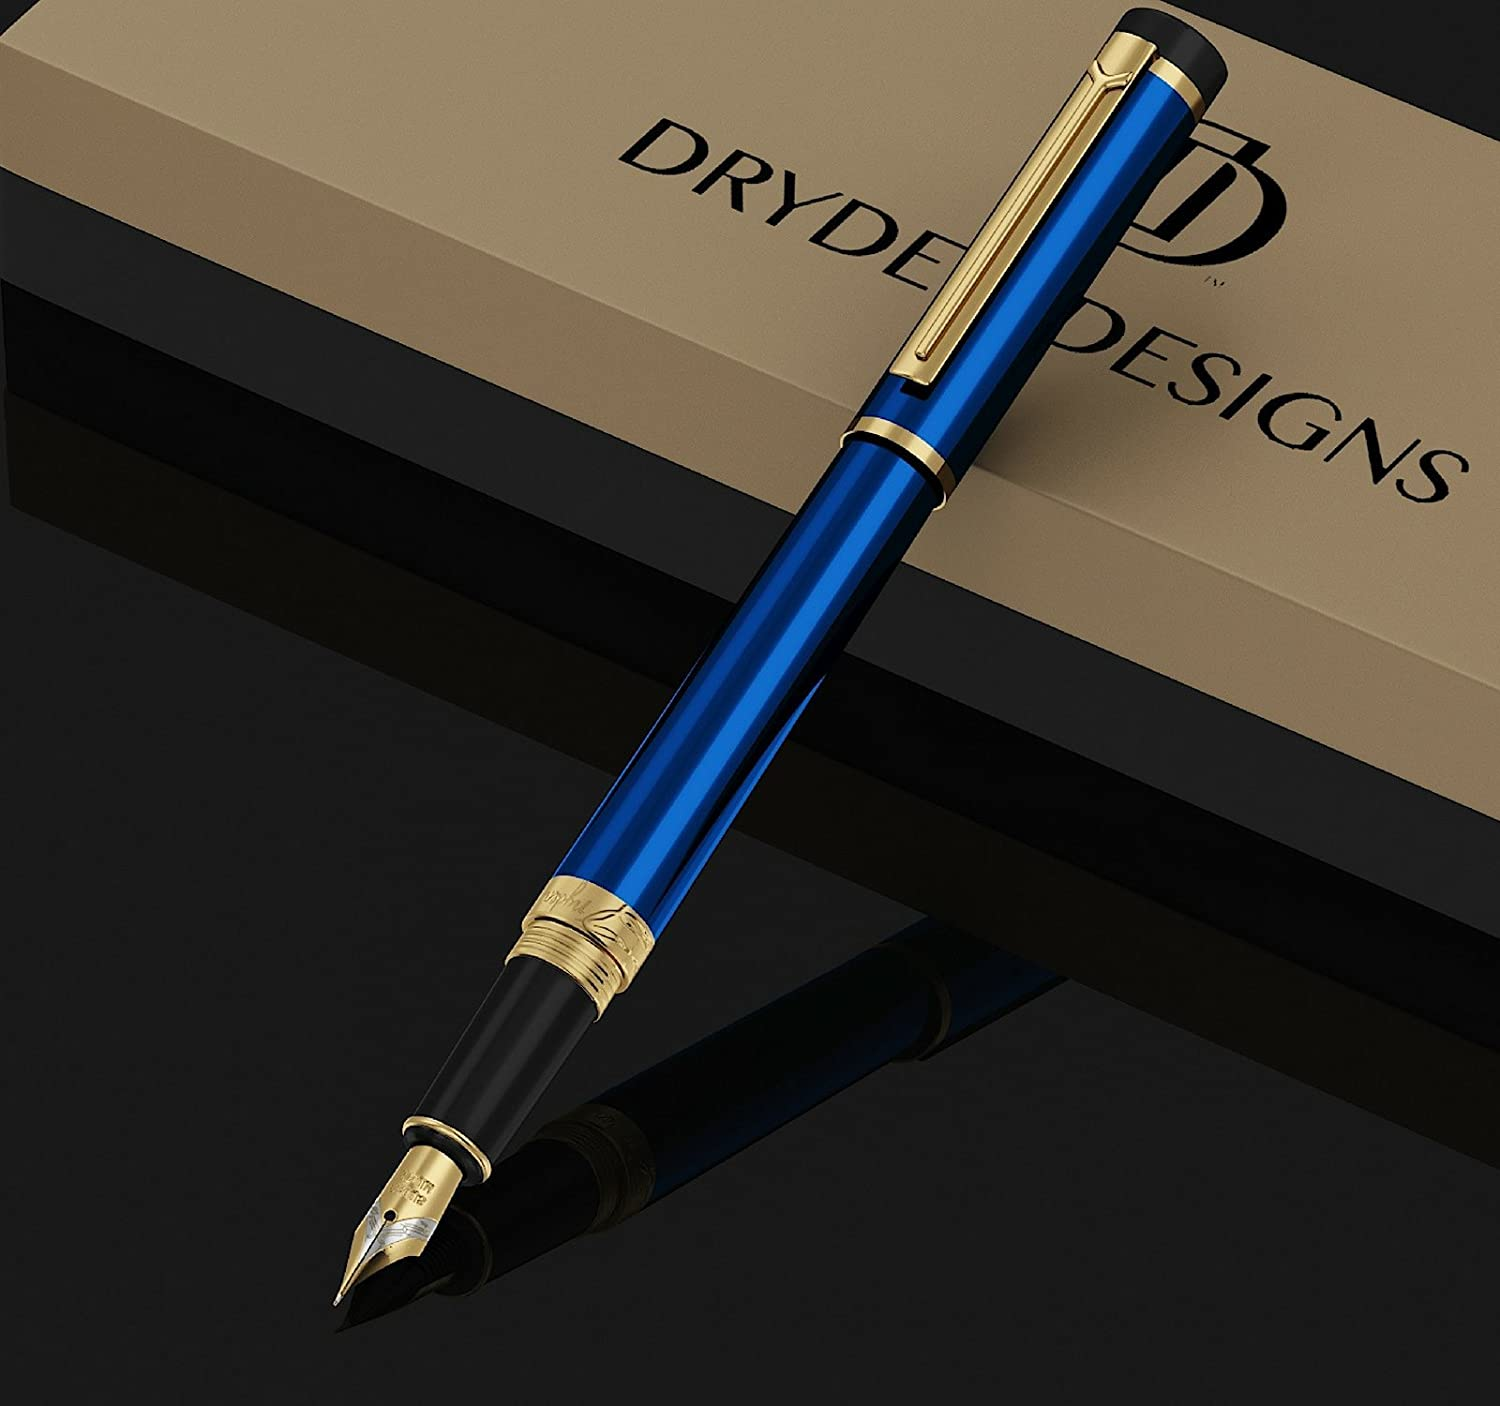 Ink Refill Converter Dryden Luxury Fountain Pen Executive Fountain Pens Set Business Gift Pen Vintage Pens Collection Calligraphy | Modern Classic Limited Edition INTENSE BLACK